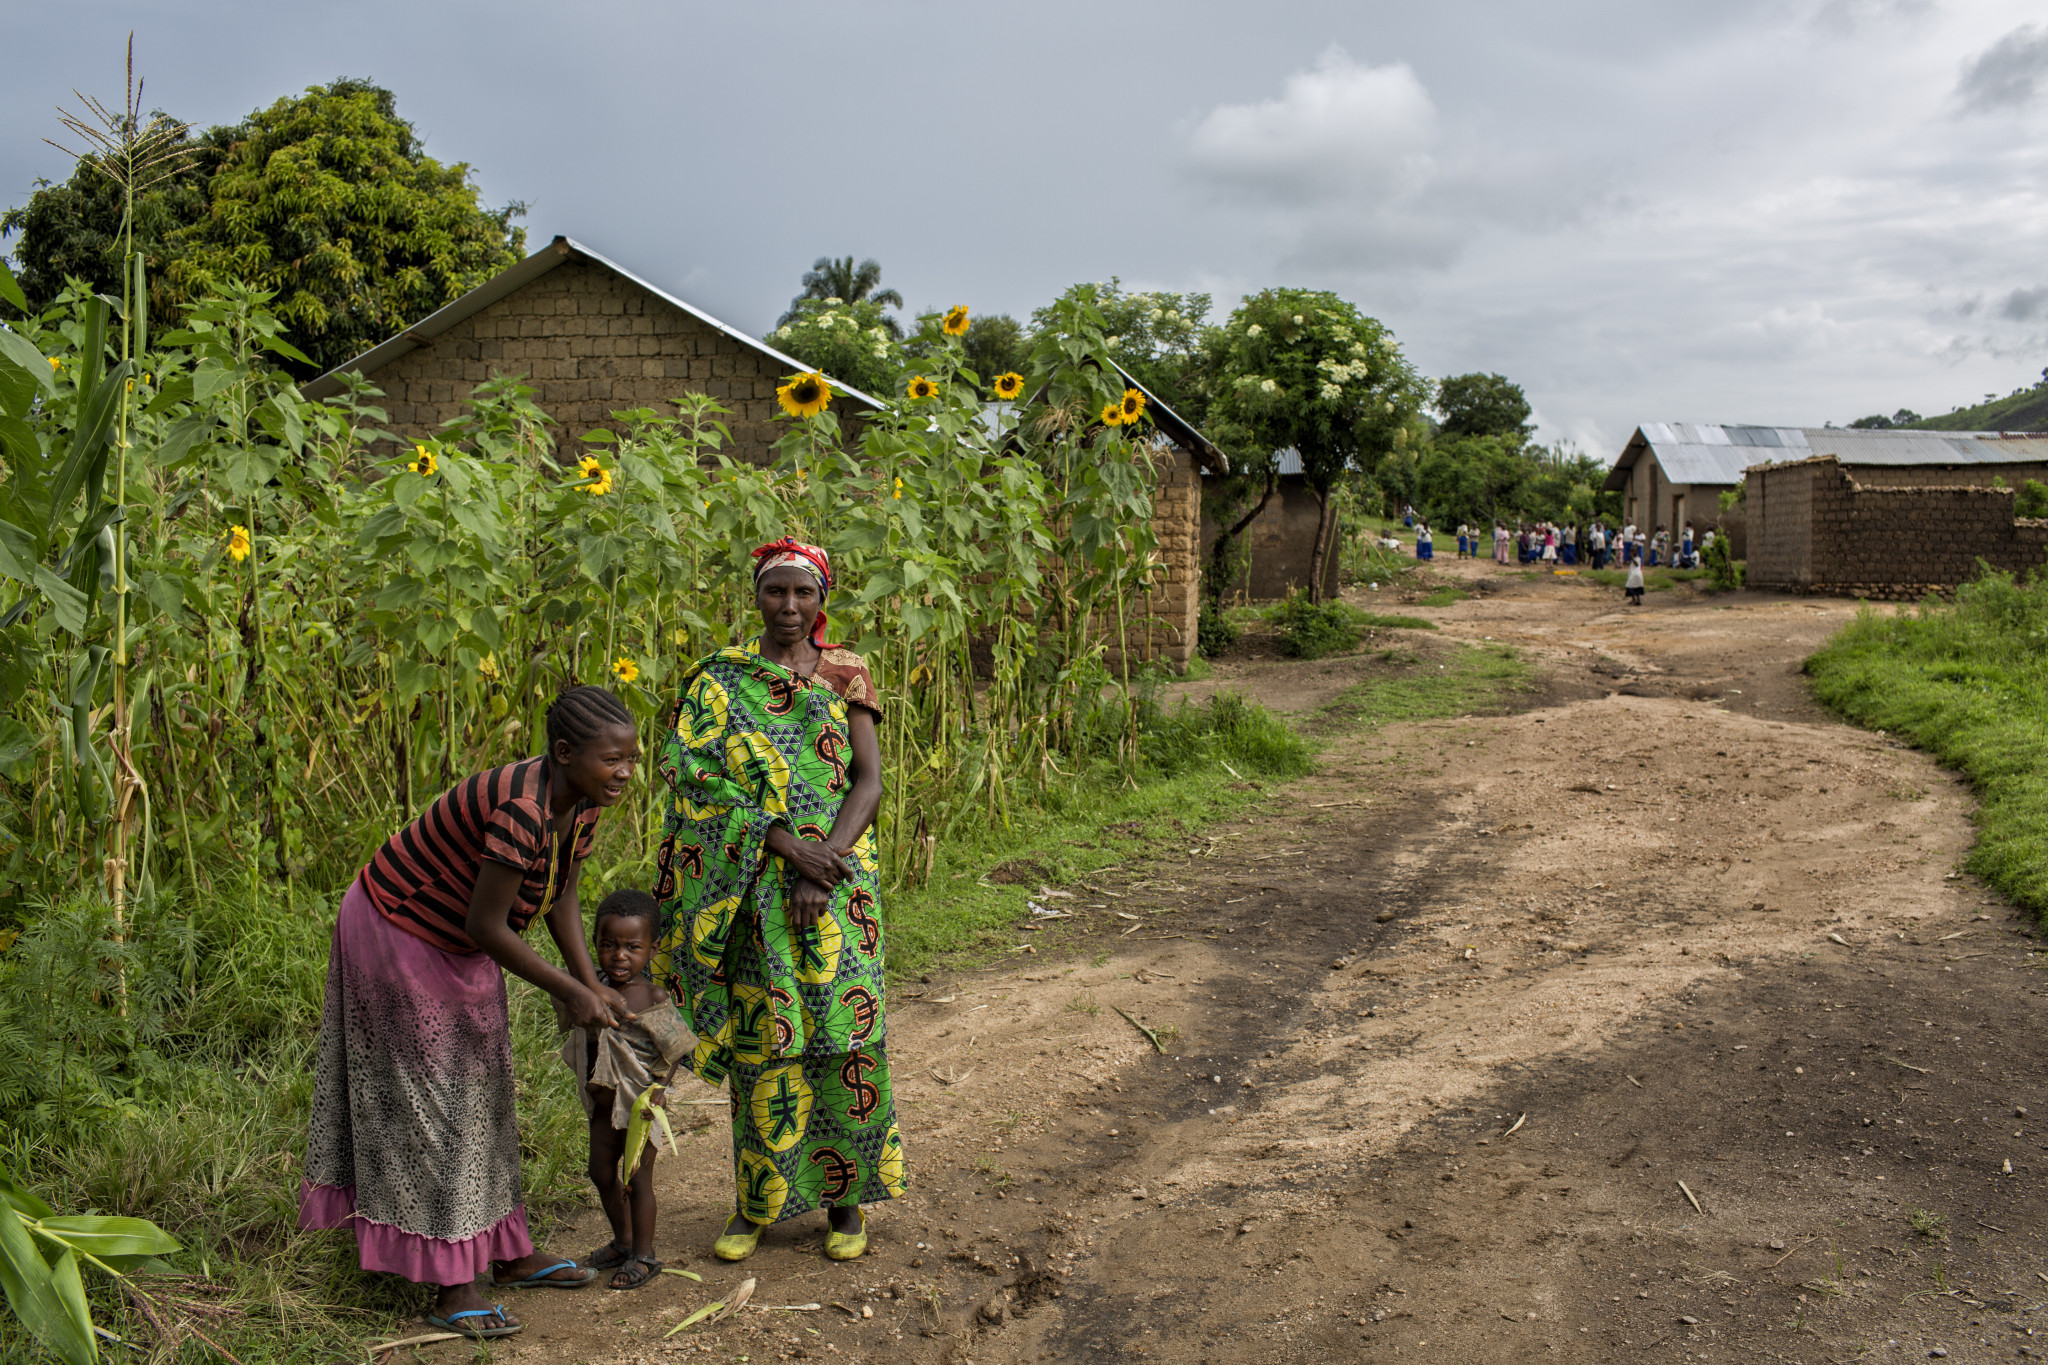 Background on Idjwi: Population - Around 250k; Average Children Per Family - 8.5; Average Daily Wage - US$0.15; Average Life Expectancy - 25 years.  Idjwi Island in Lake Kivu is a remote and neglected island in one of Africa's most turbulent regions of the Democratic Republic of Congo (DRC). It is home to an estimated 250,000 people and has garnered a reputation as a safe-haven for refugees fleeing conflict like the Rwandan genocide of 1994 and the DRC M23 rebellion of 2013.  While isolation has led to its peace, it has also led to its neglect by the broader health system in the DRC. Idjwi suffers from minimal civil infrastructure. Infectious disease is a public health problem on the island with malaria, diarrheal diseases, and neglected tropical diseases (NTDs) plaguing much of the population.